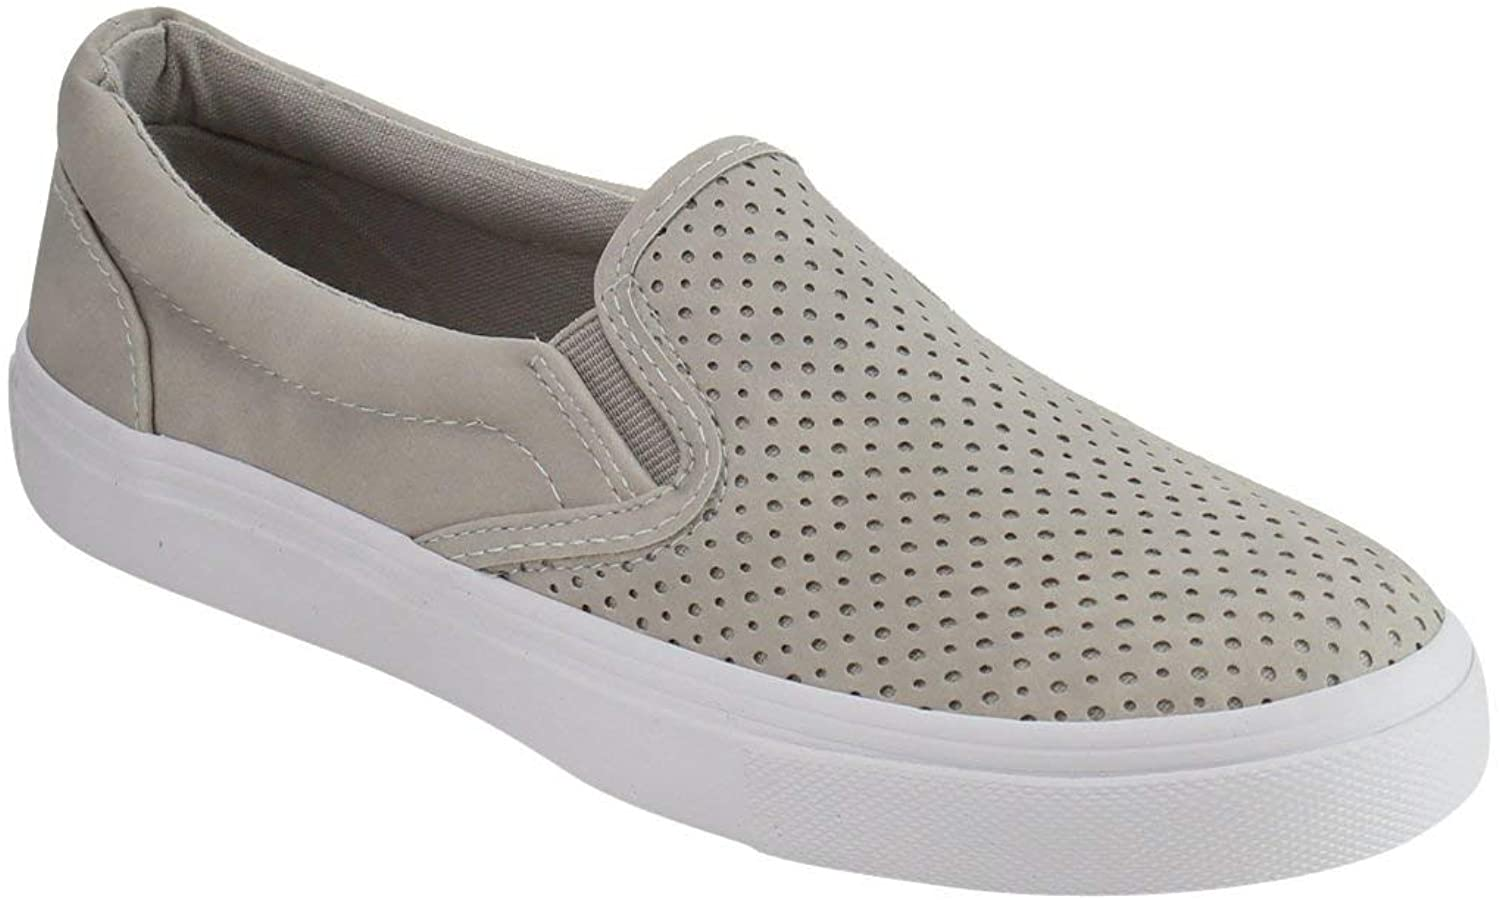 LUSTHAVE Women's Tracer Slip On White Sole shoes - Athletic Fashion Perforated Sneaker - Padded Cushion Clay 8.5